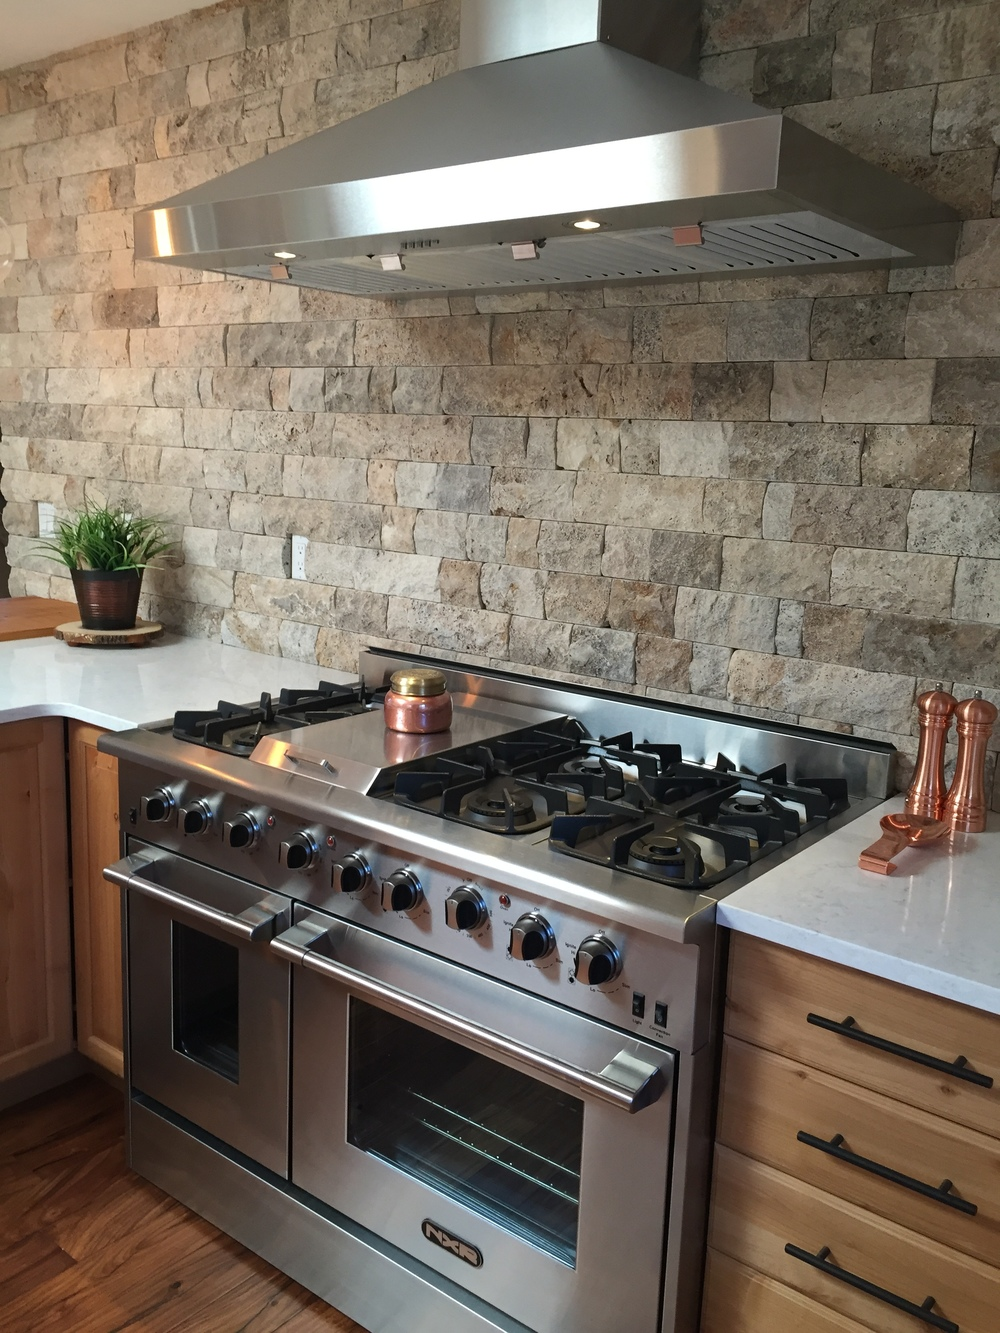 Professional range and hood fan, quartz countertops, rustic stone, Blanchette Slate.